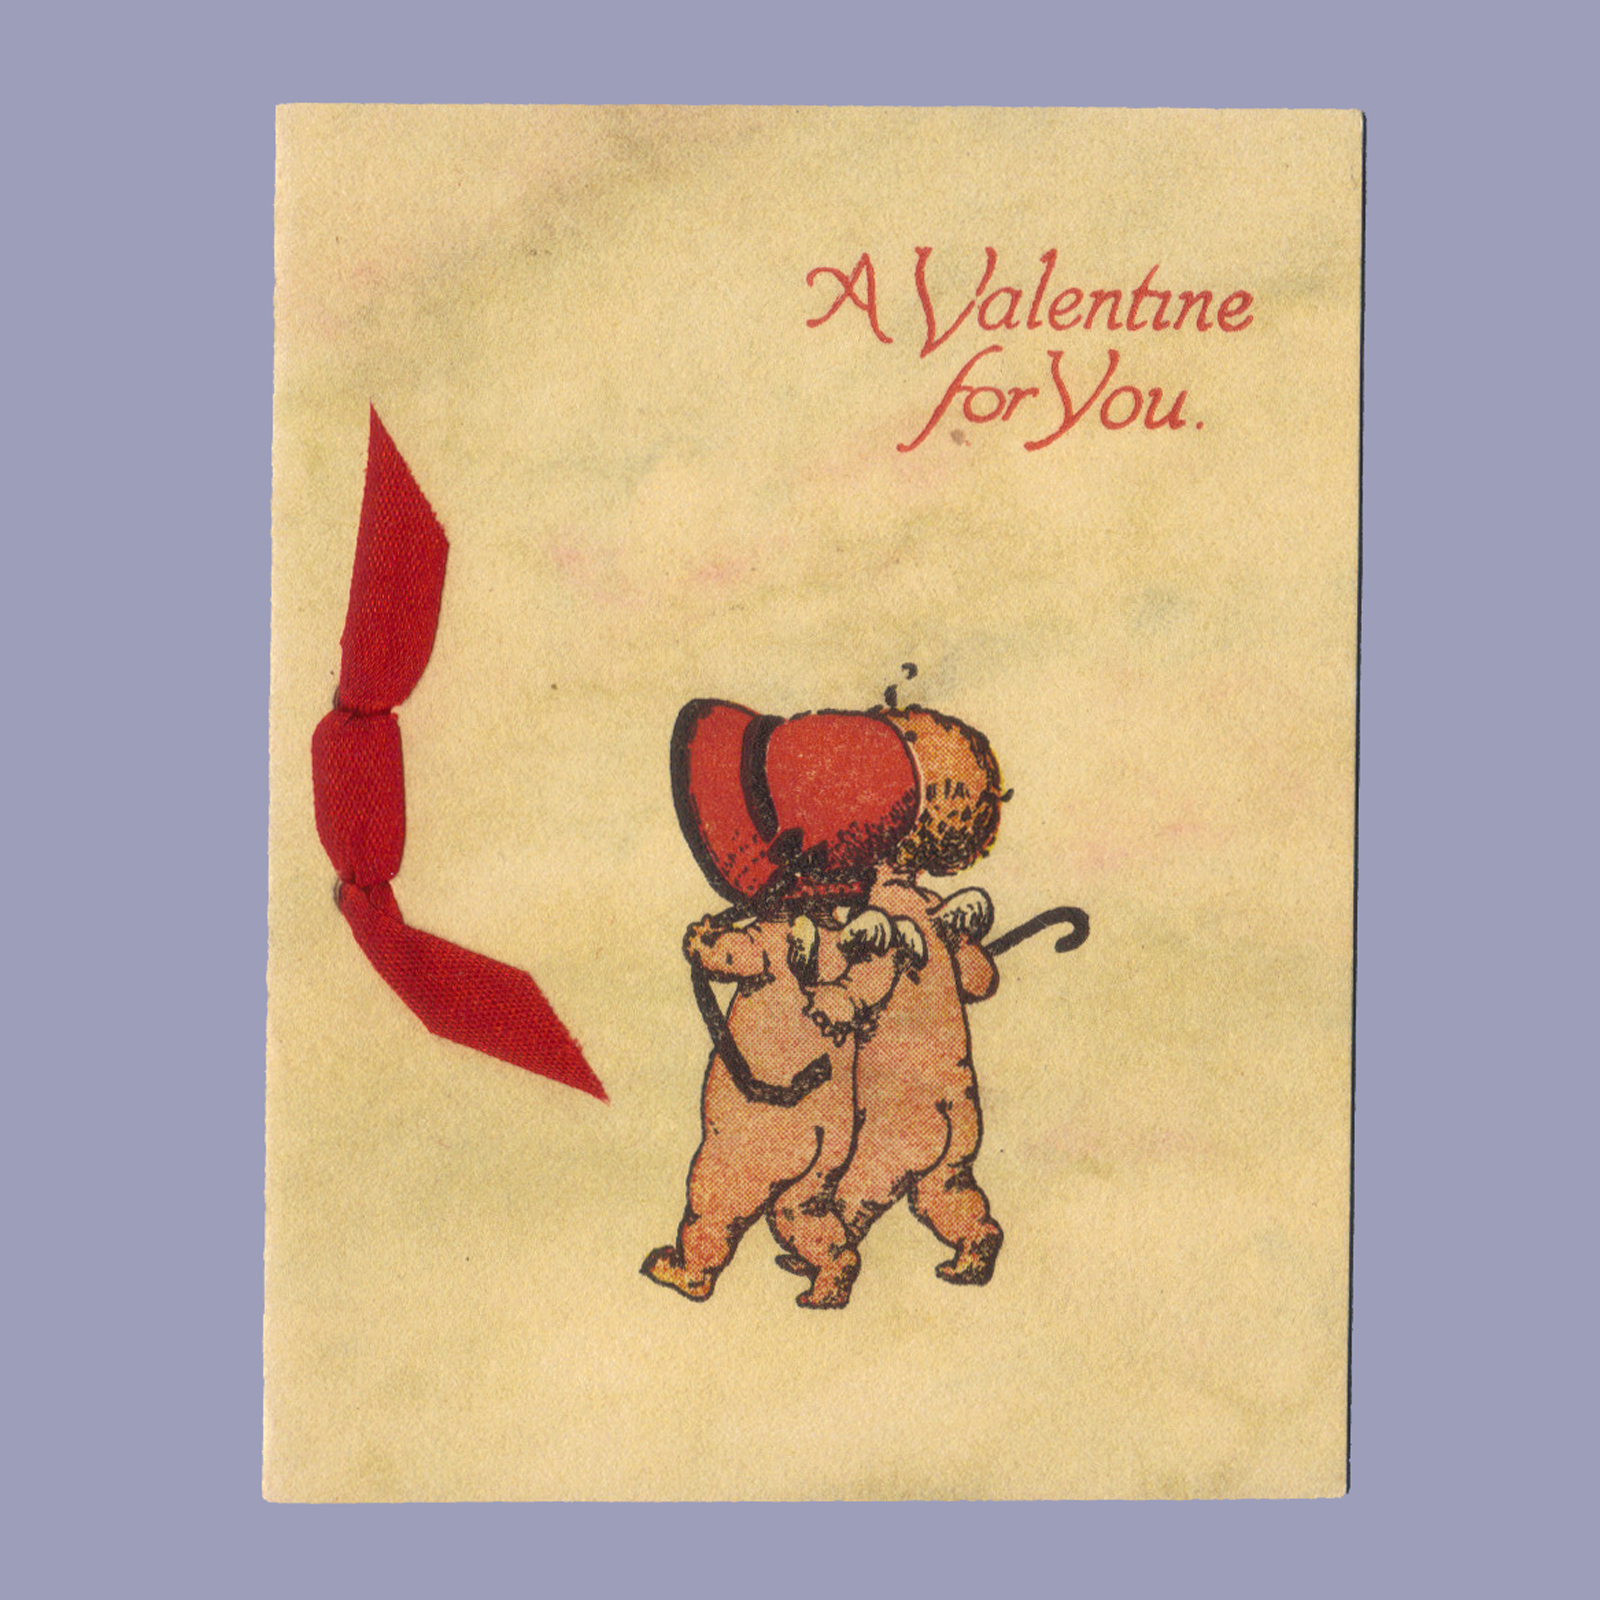 Vintage valentine museum maker gibson art company gibson i would love to hear from any gibson collectors who have any input on this somewhat confusing era of the company history and how cards were marked during m4hsunfo Choice Image